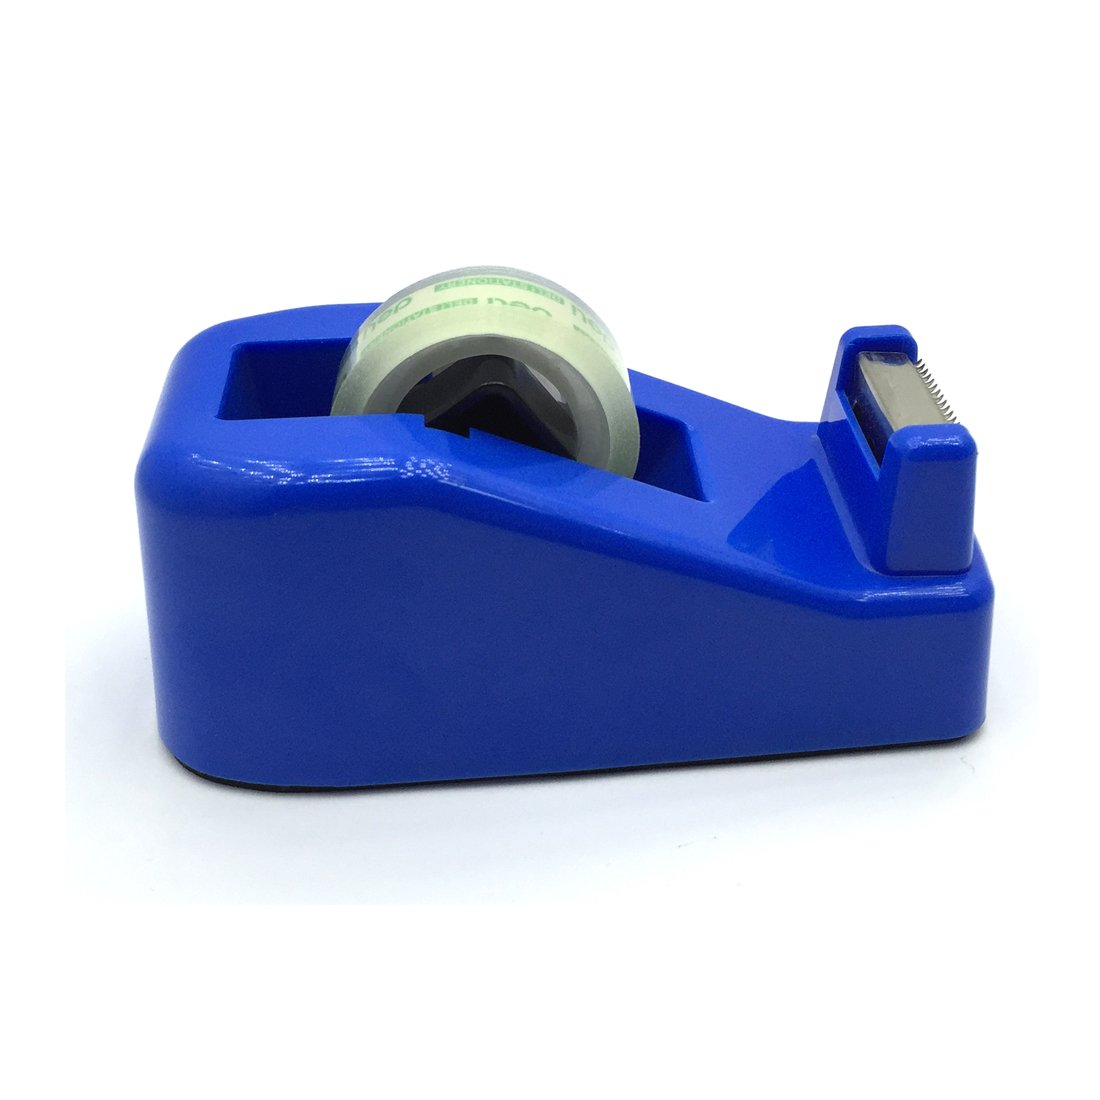 Heavy Duty Tape Dispenser, JIALEEY Tape Dispenser Office Desk Top Sellotape Sticky Cellotape Holder Table Weighted Non-slip Capacity 0.7'' Width - With 1 Roll of Tape Supplied, Blue